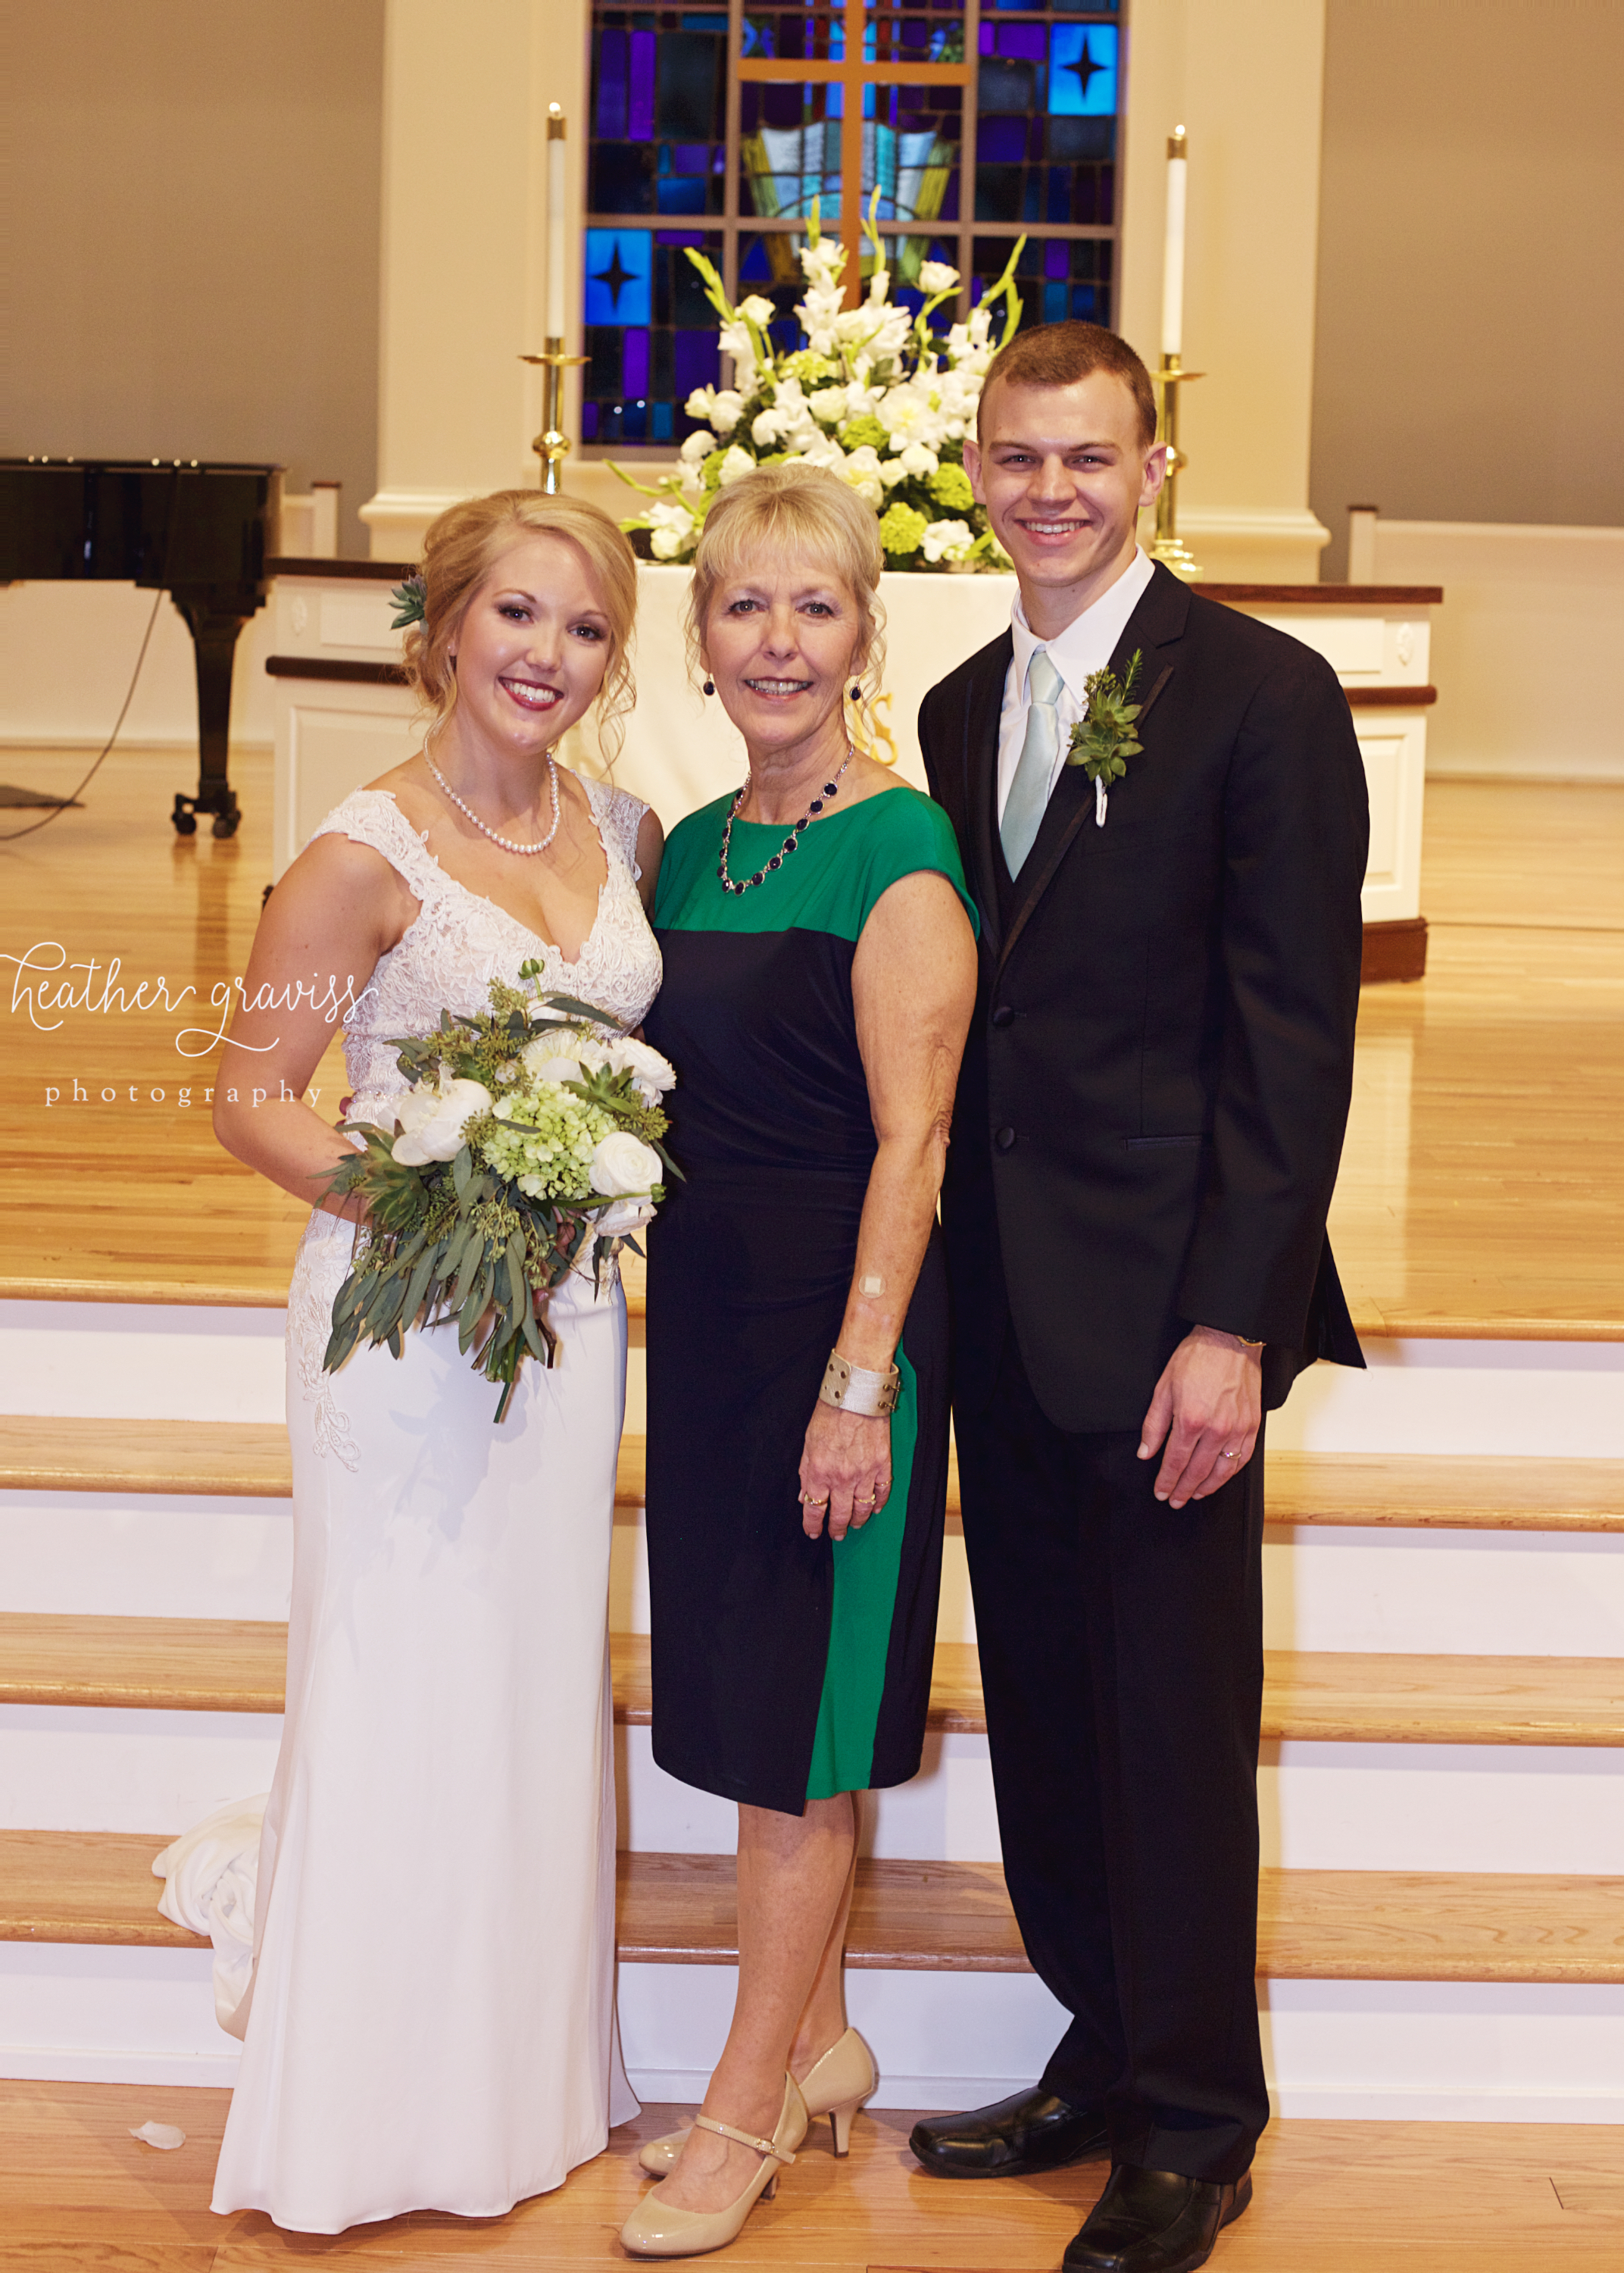 nashville middle tn wedding 104.jpg